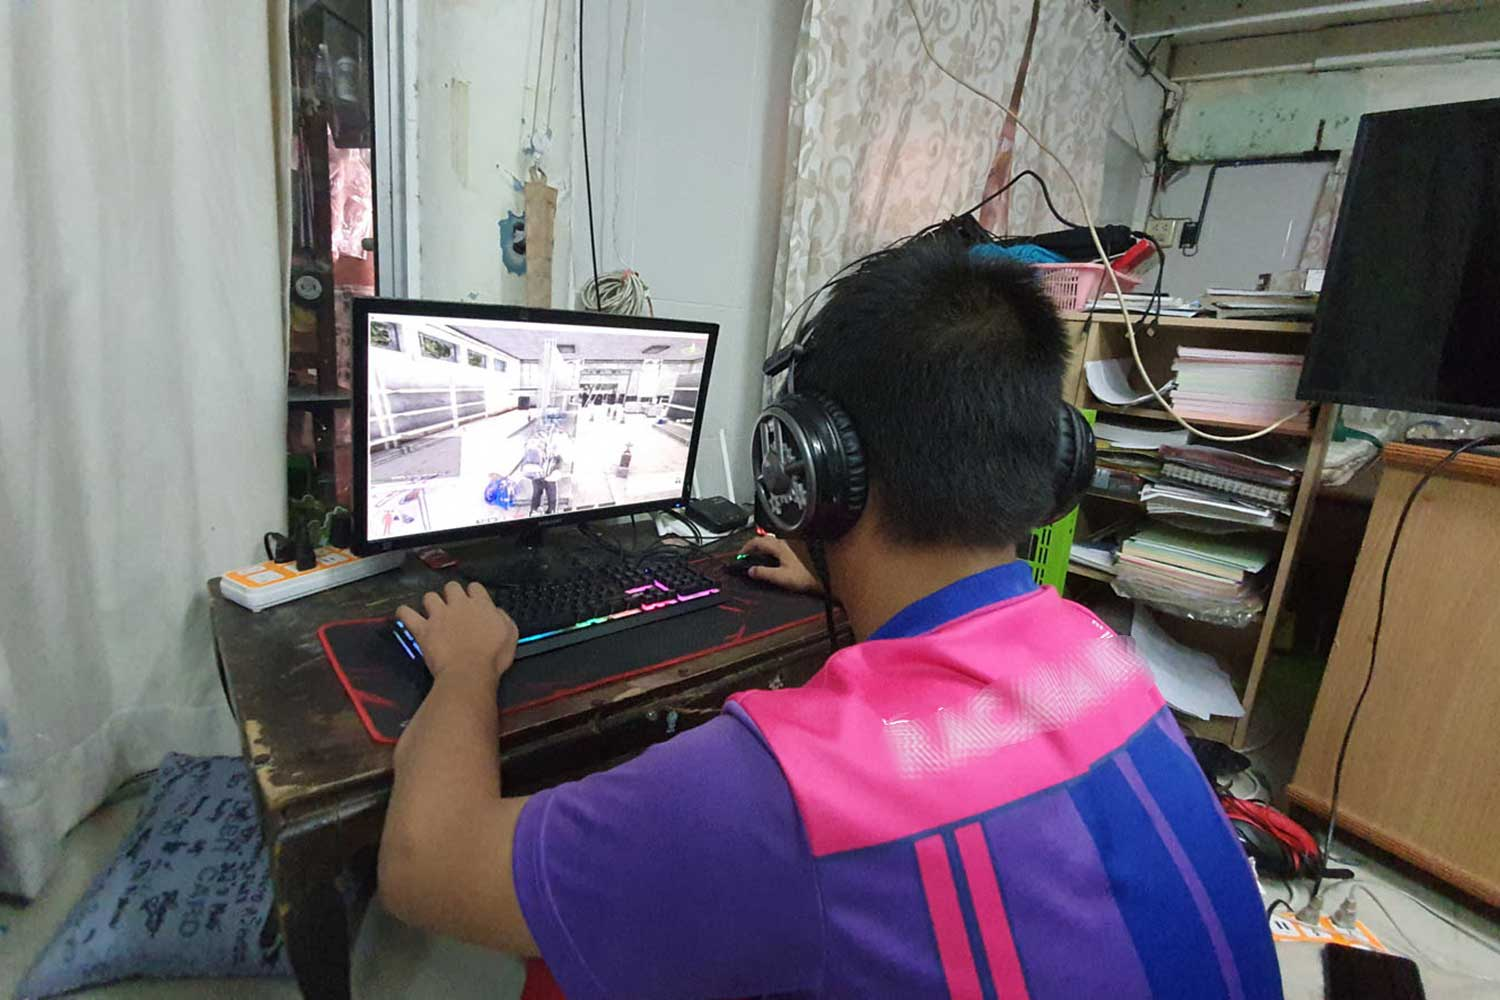 Boy Playing Online Game Threatens Mother With Knife